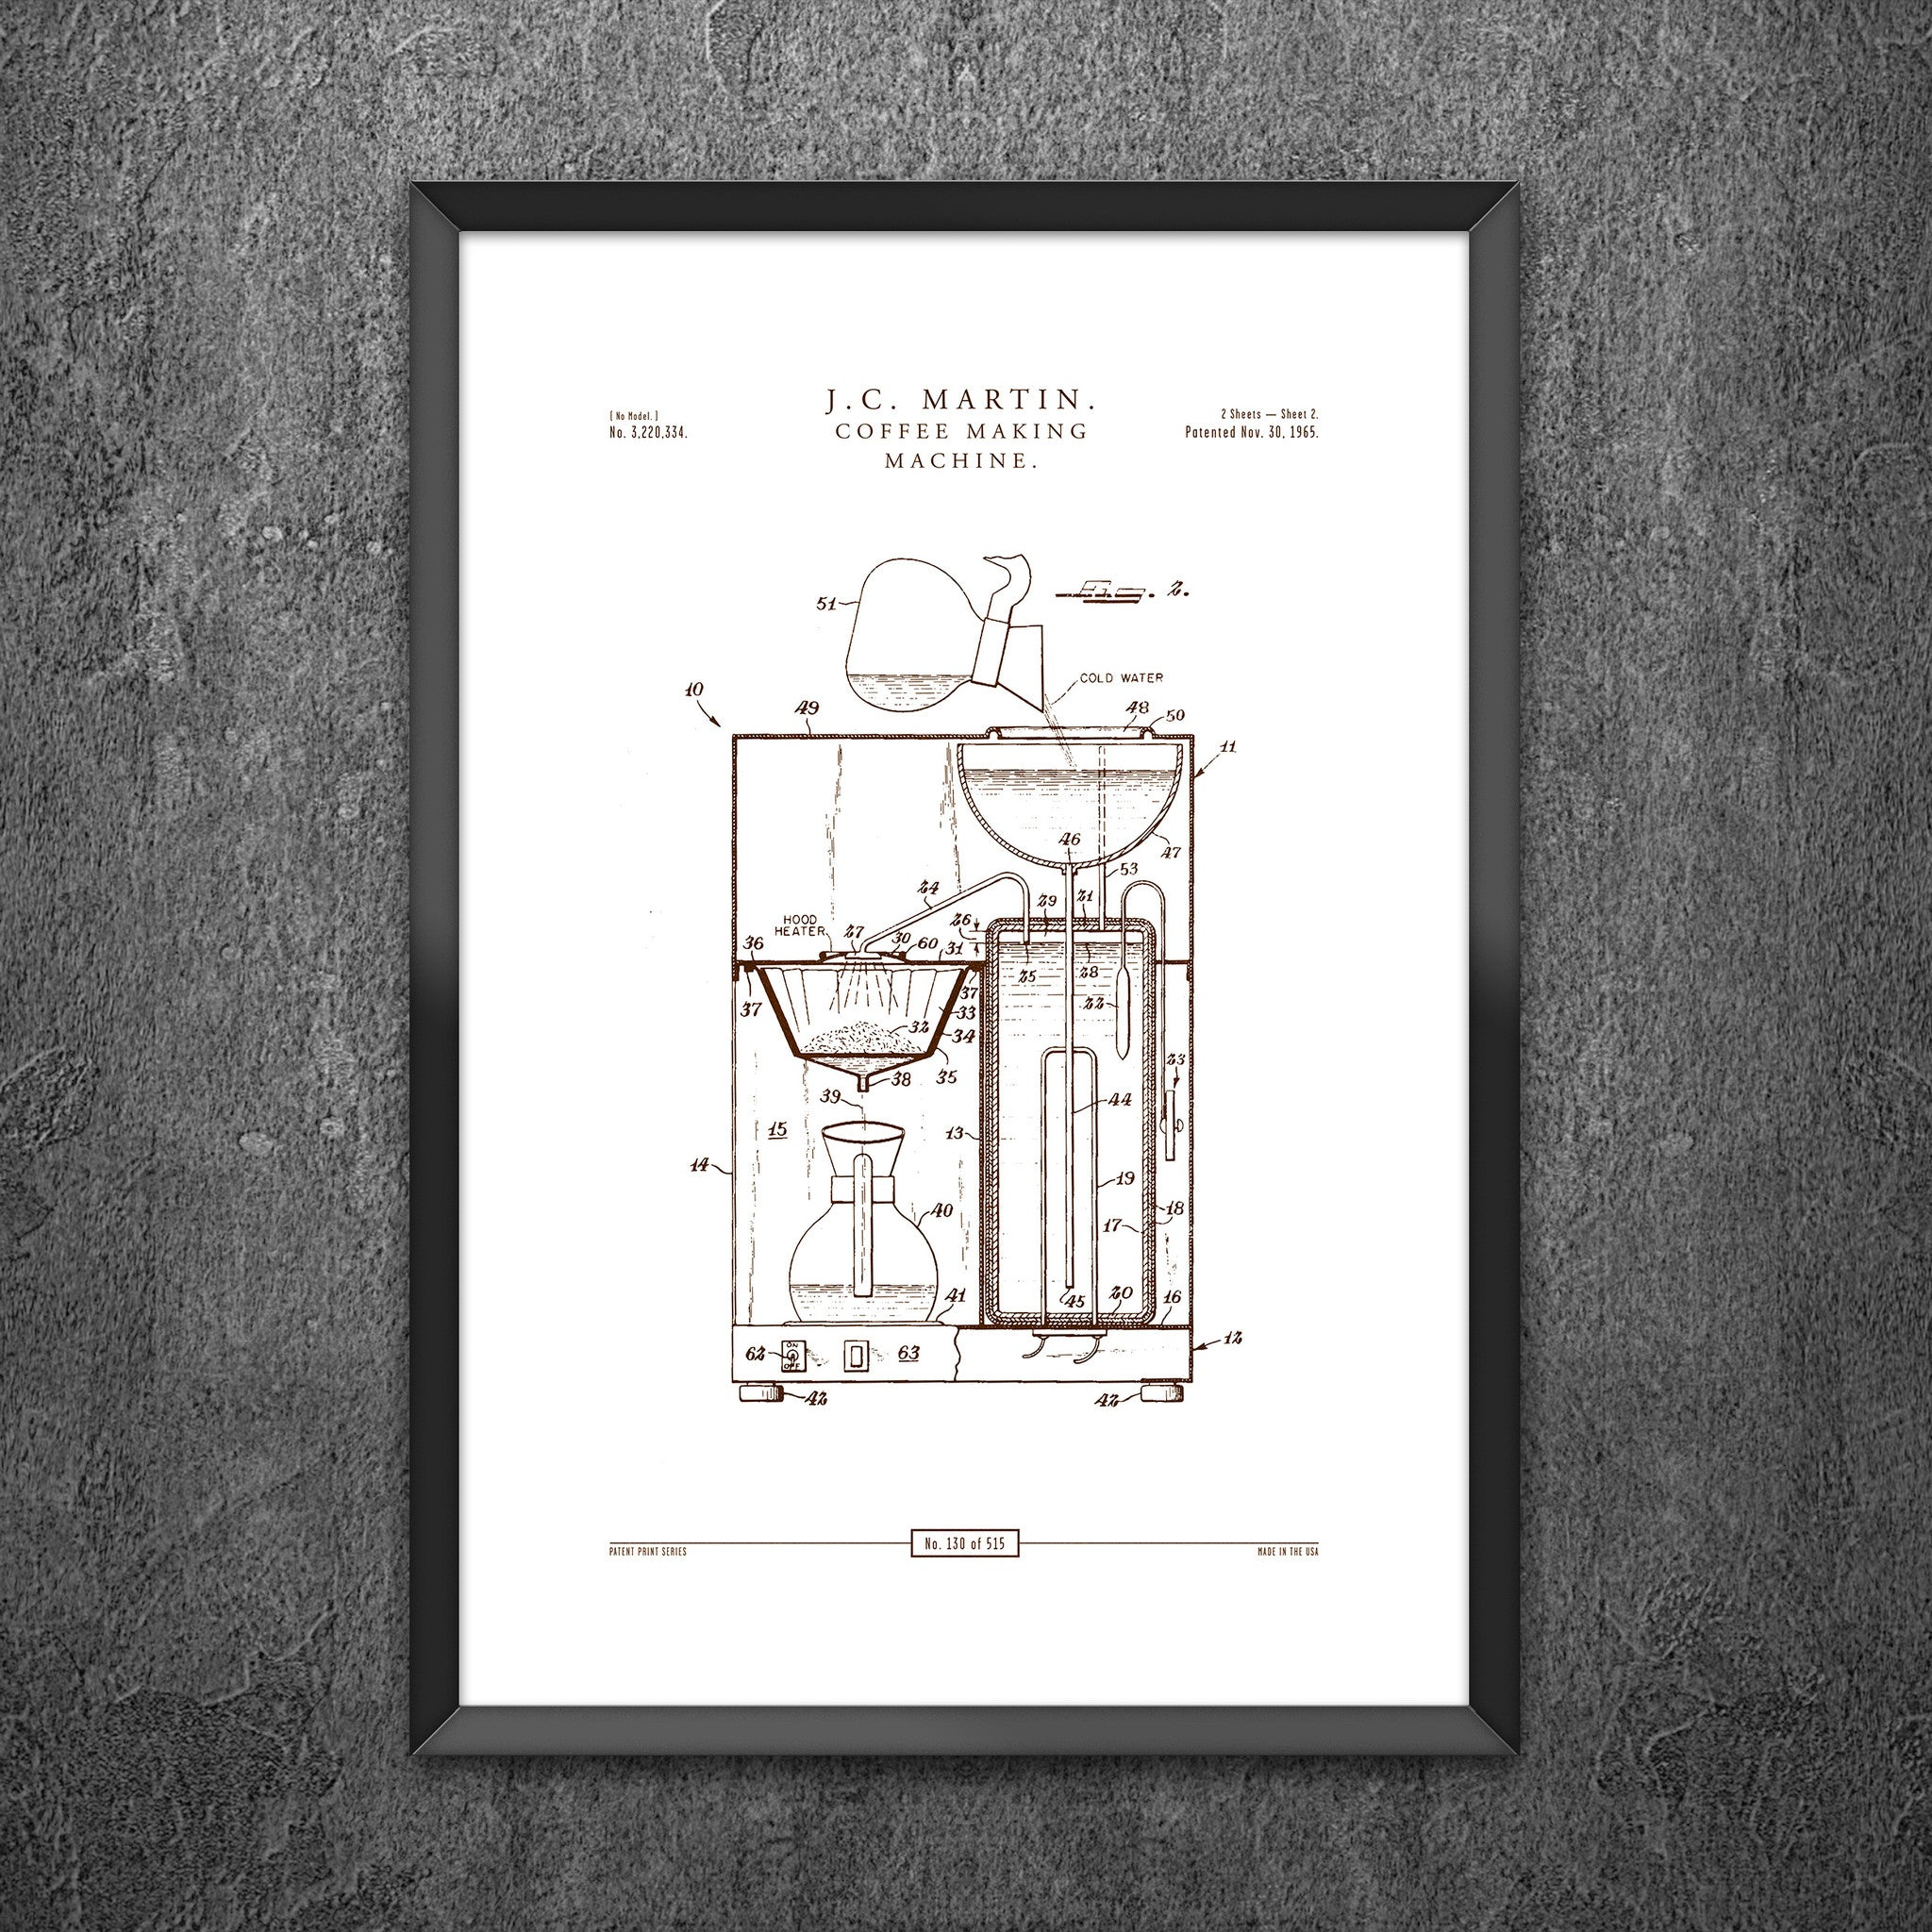 No 130 - Coffee Making Machine